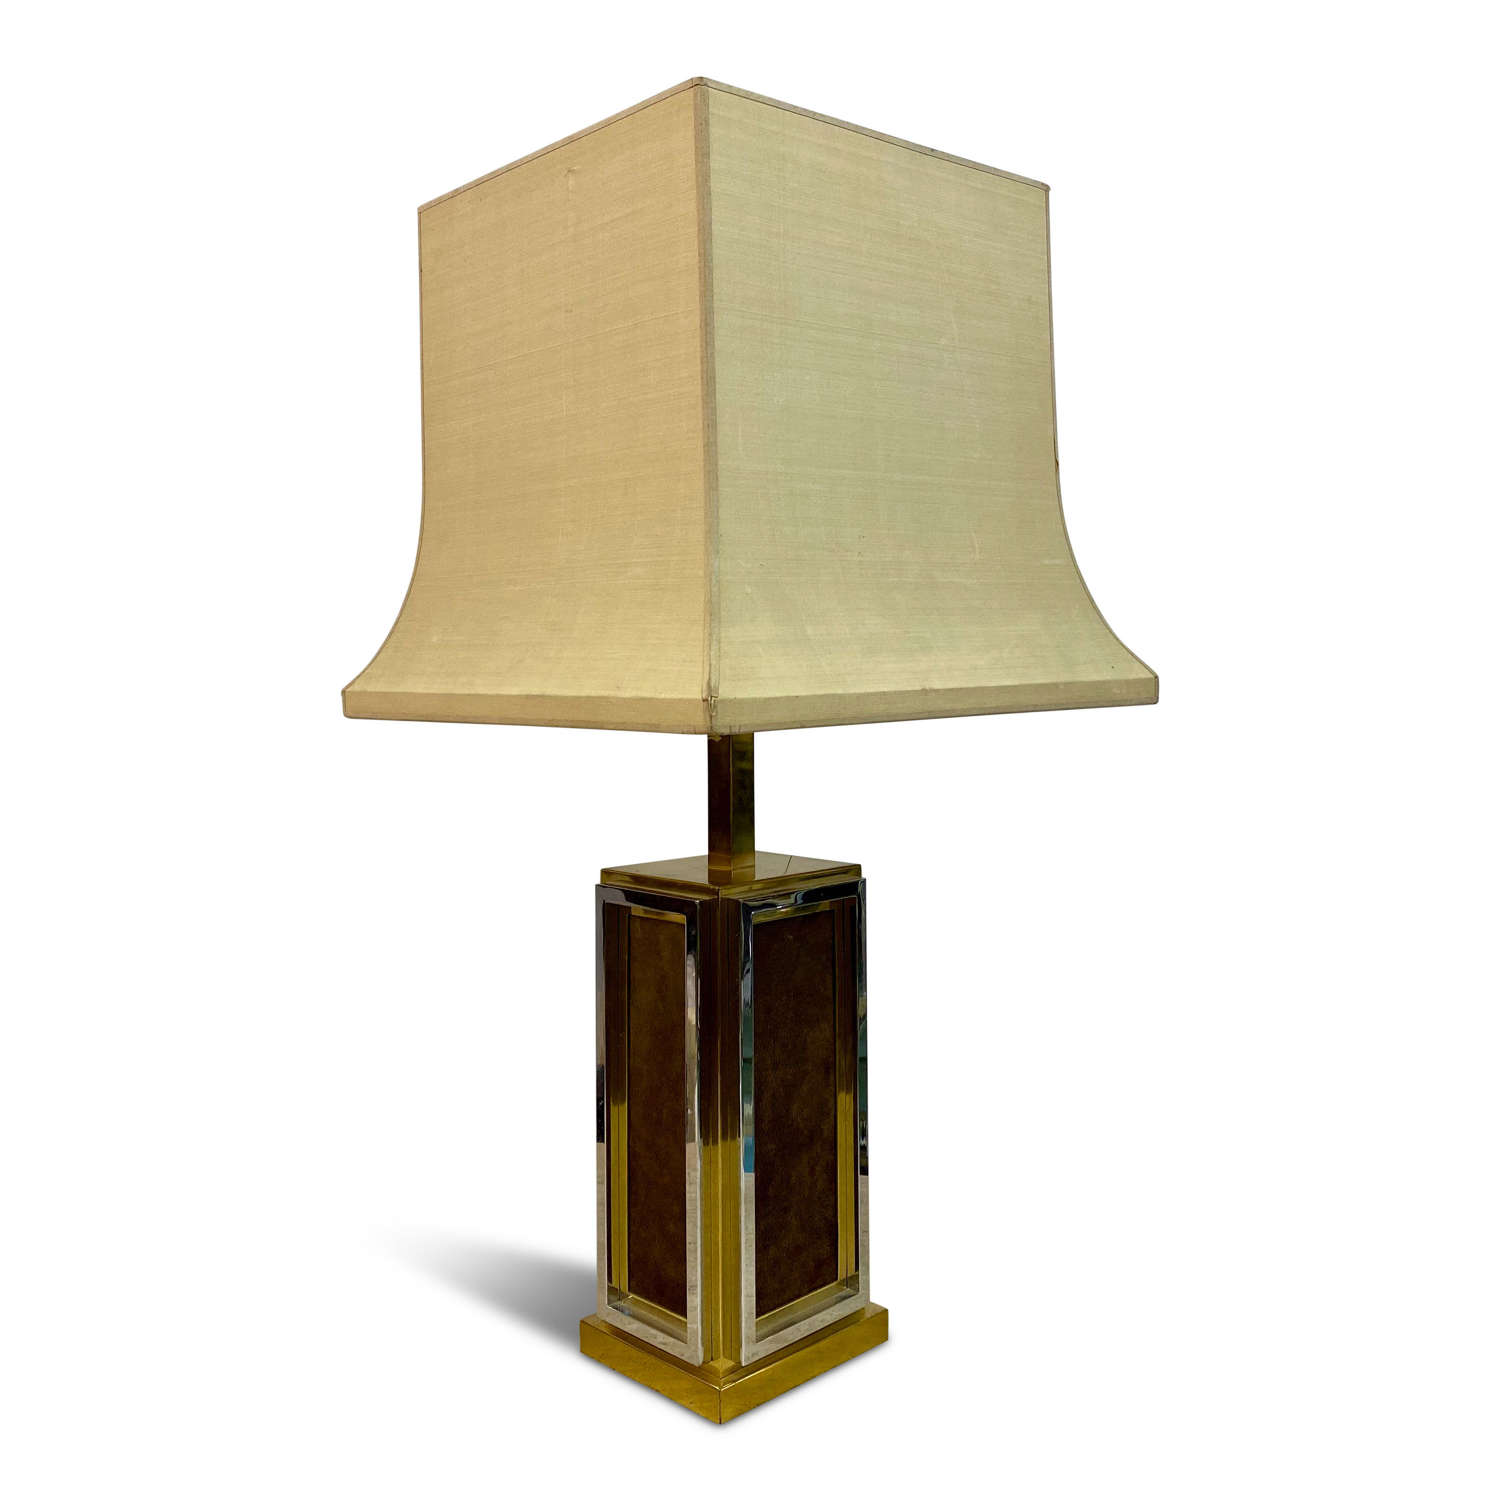 1970s French Brass, Chrome and Leather Table Lamp by Maison Jansen